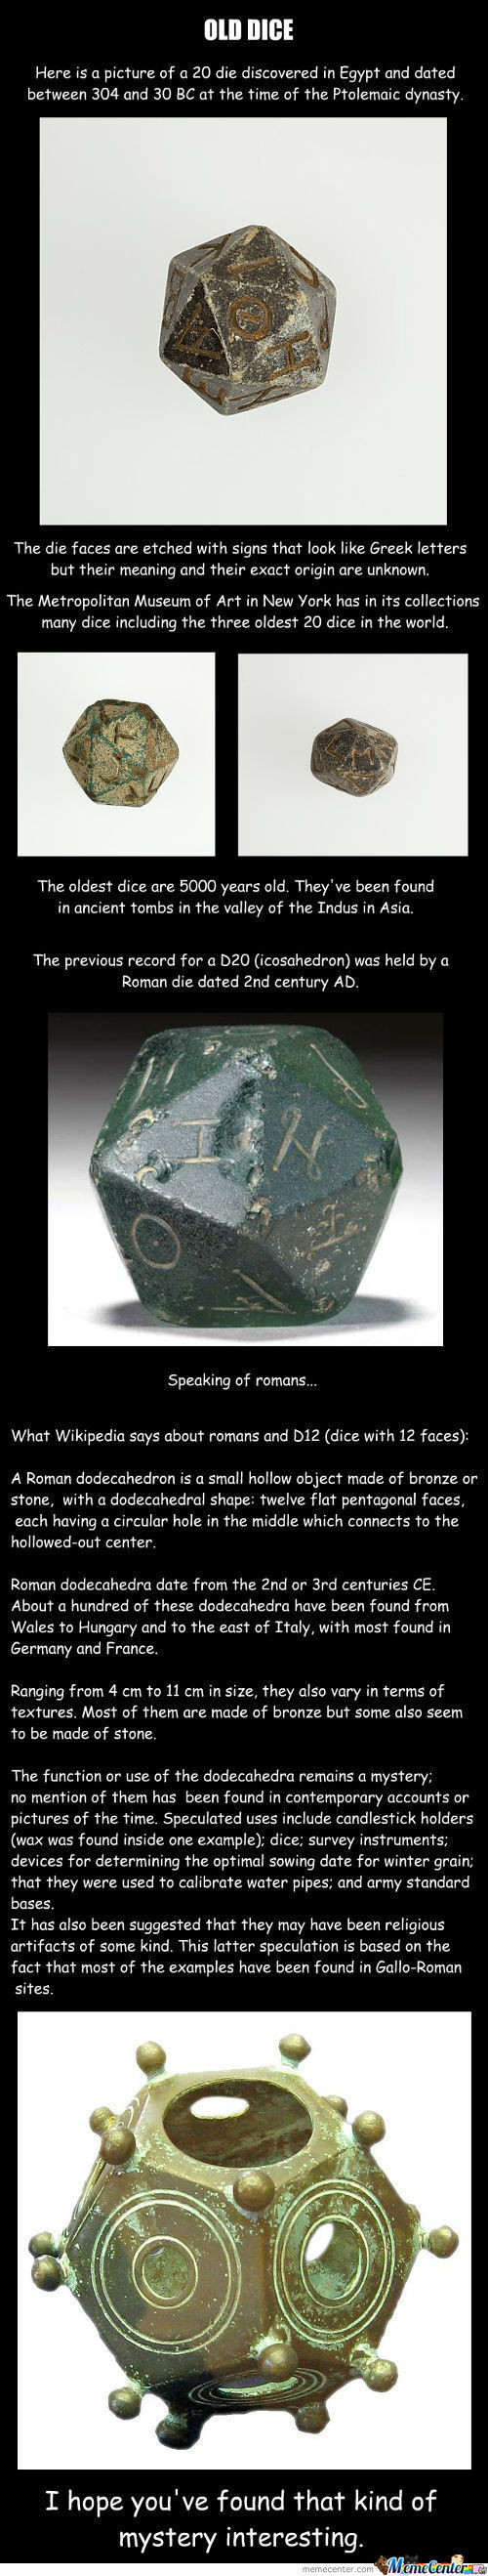 (Very) Old Dice